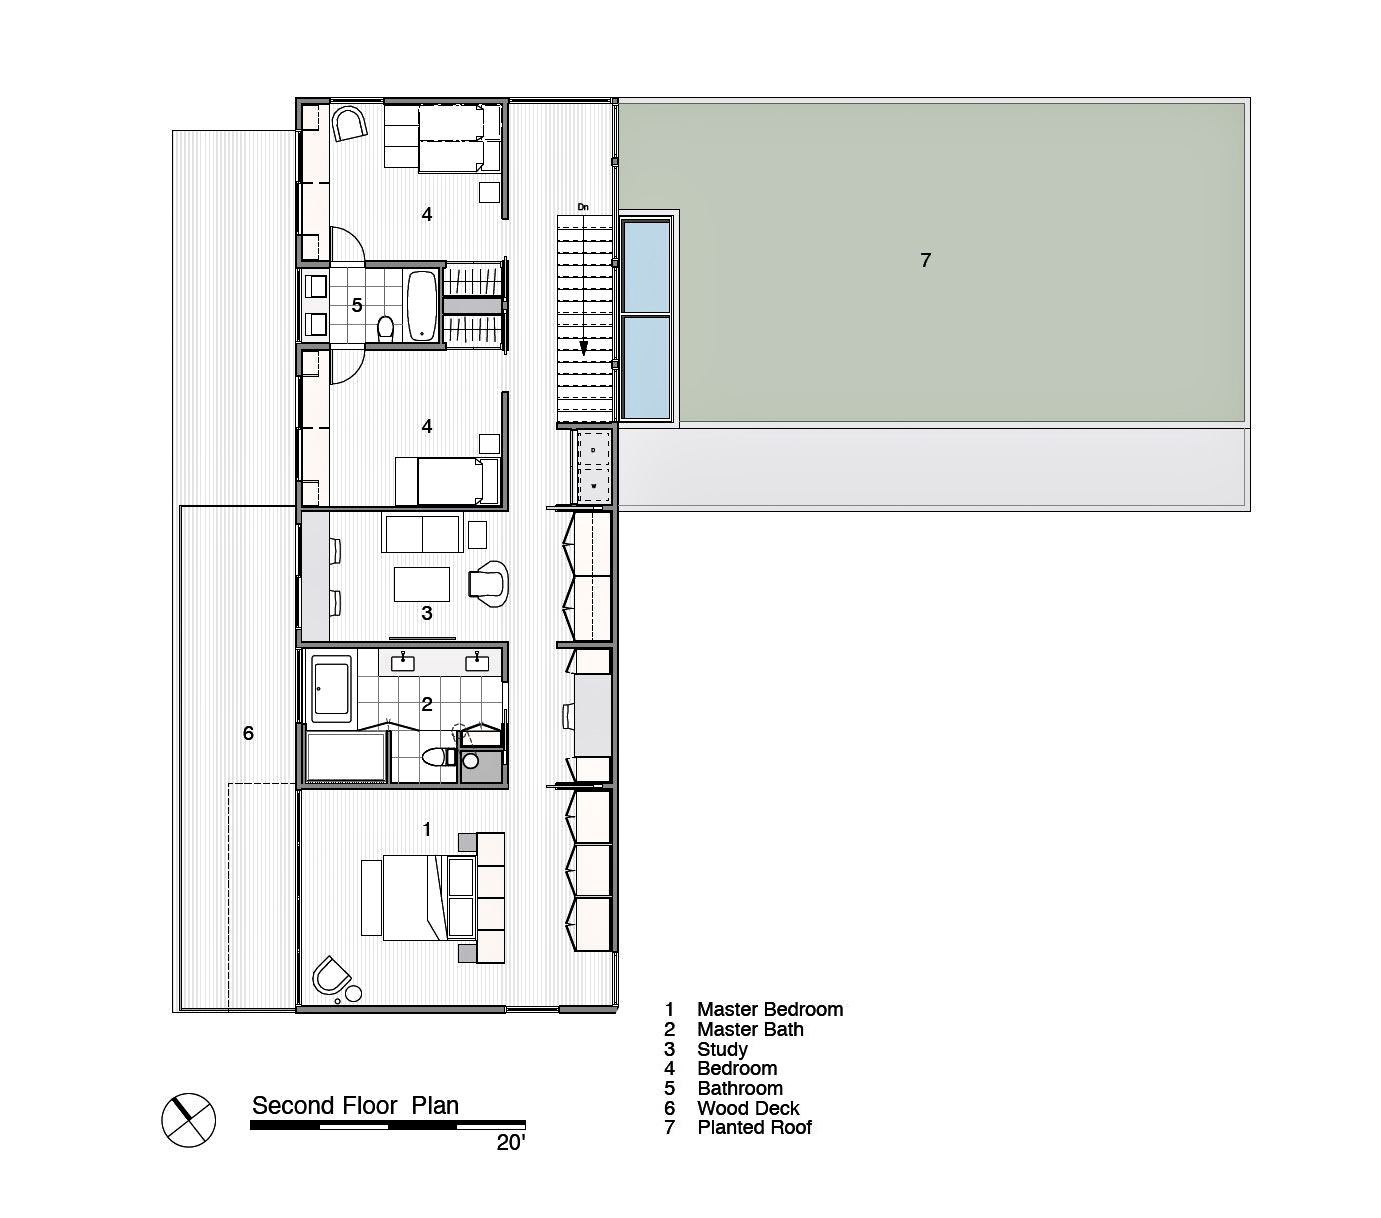 Second Floor Plan - Peconic Bay Residence - Clearview Dr, Sag Harbor, NY, USA